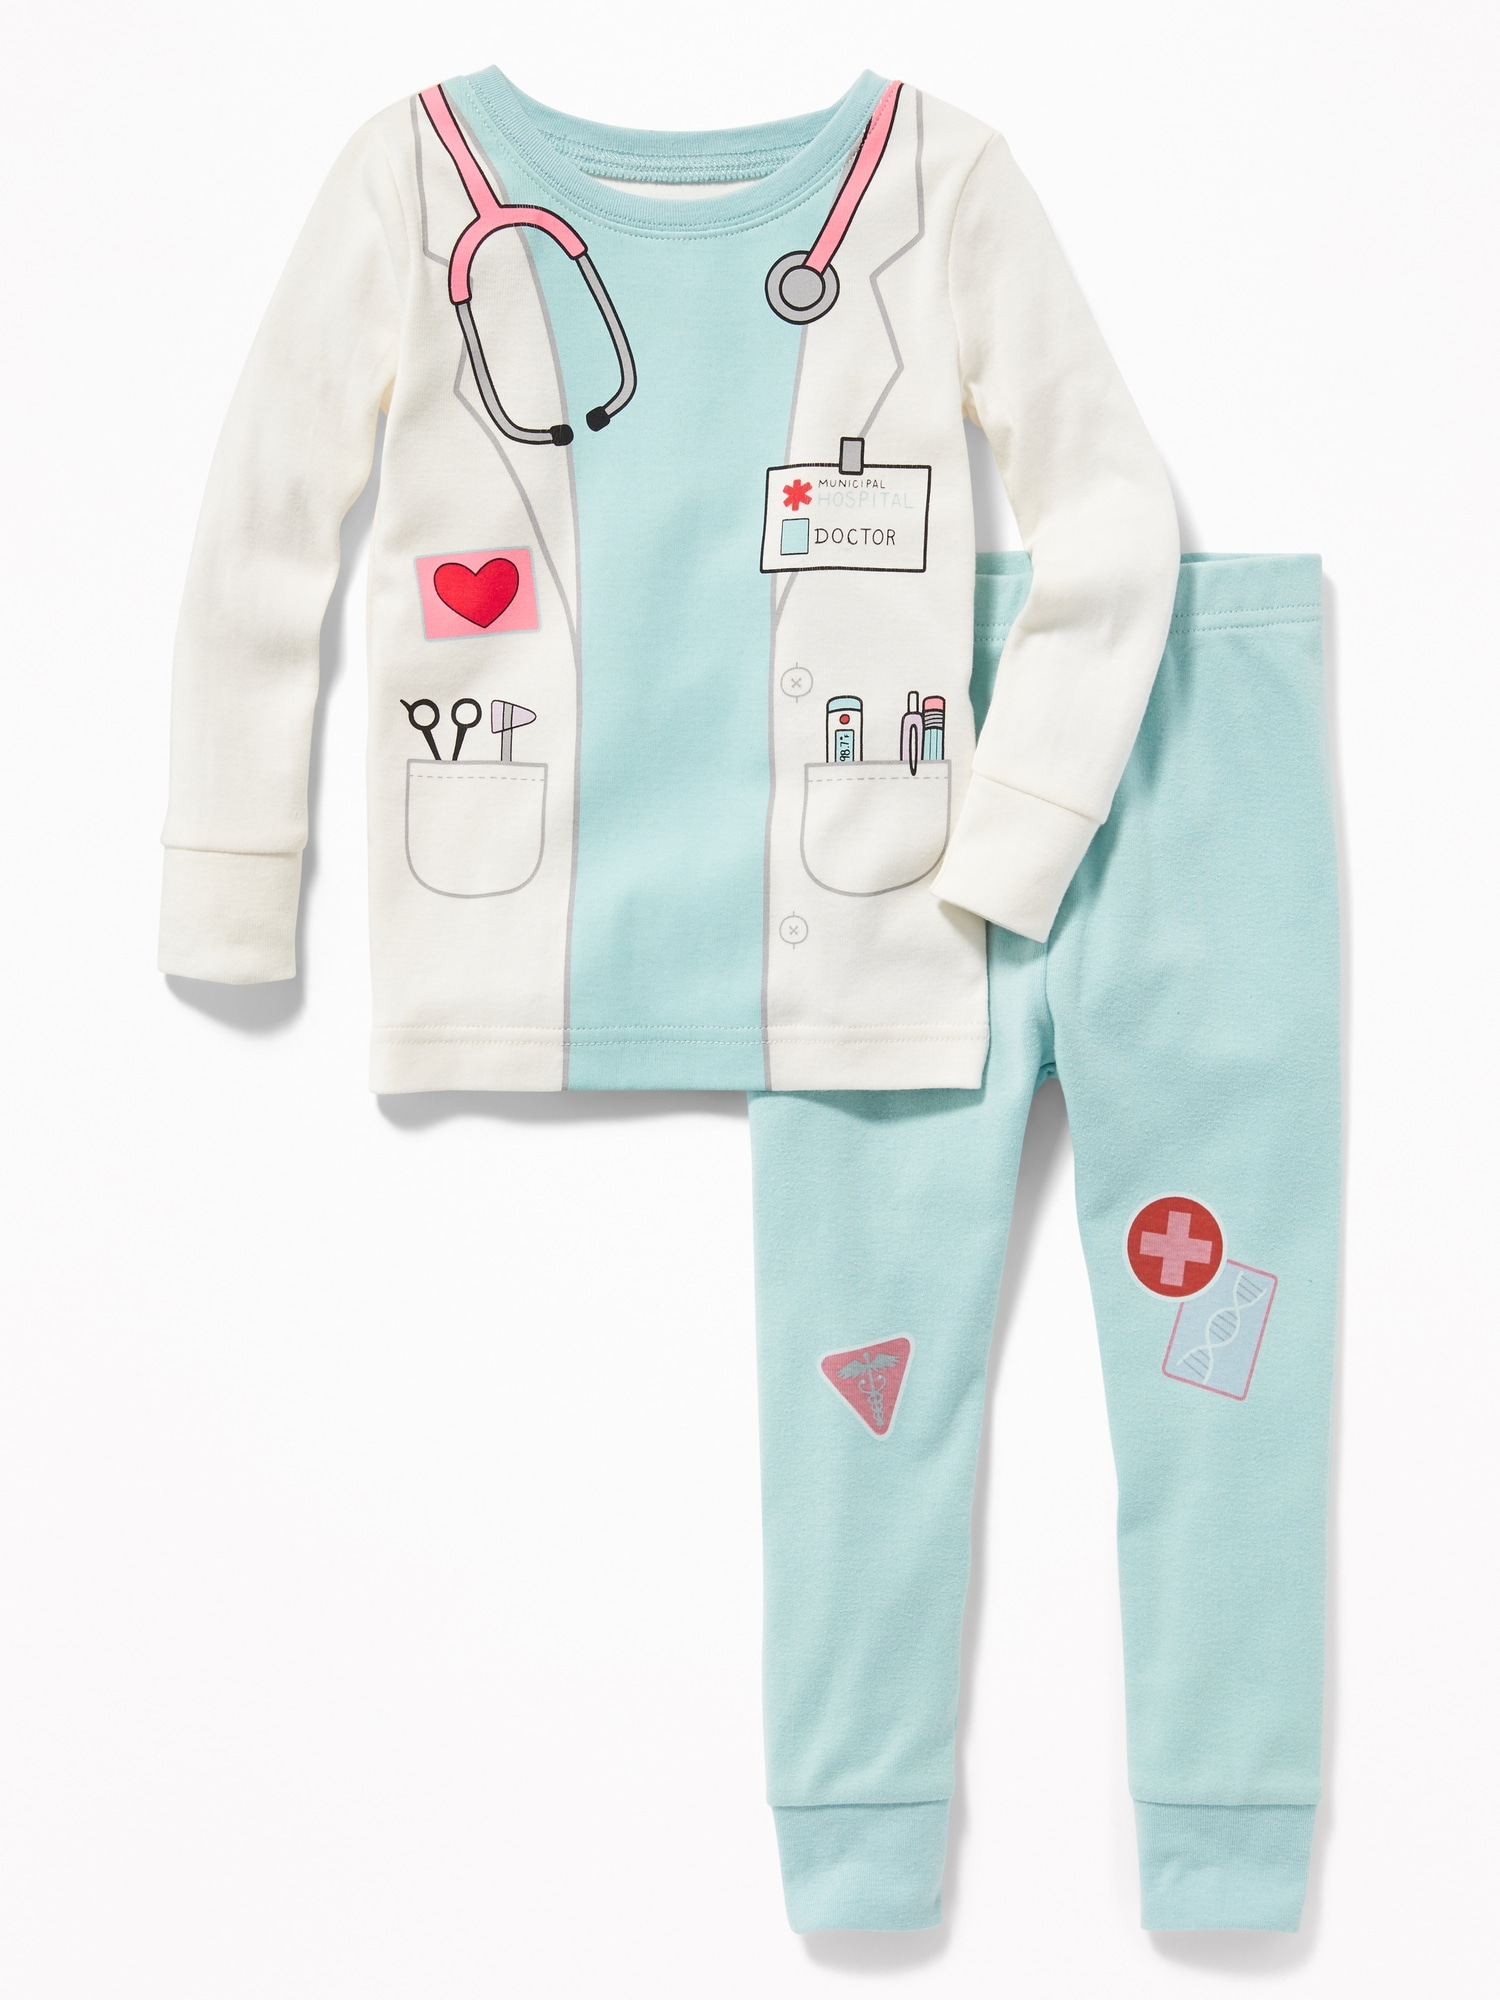 4cd1a9041 Doctor-Graphic Sleep Set for Toddler   Baby